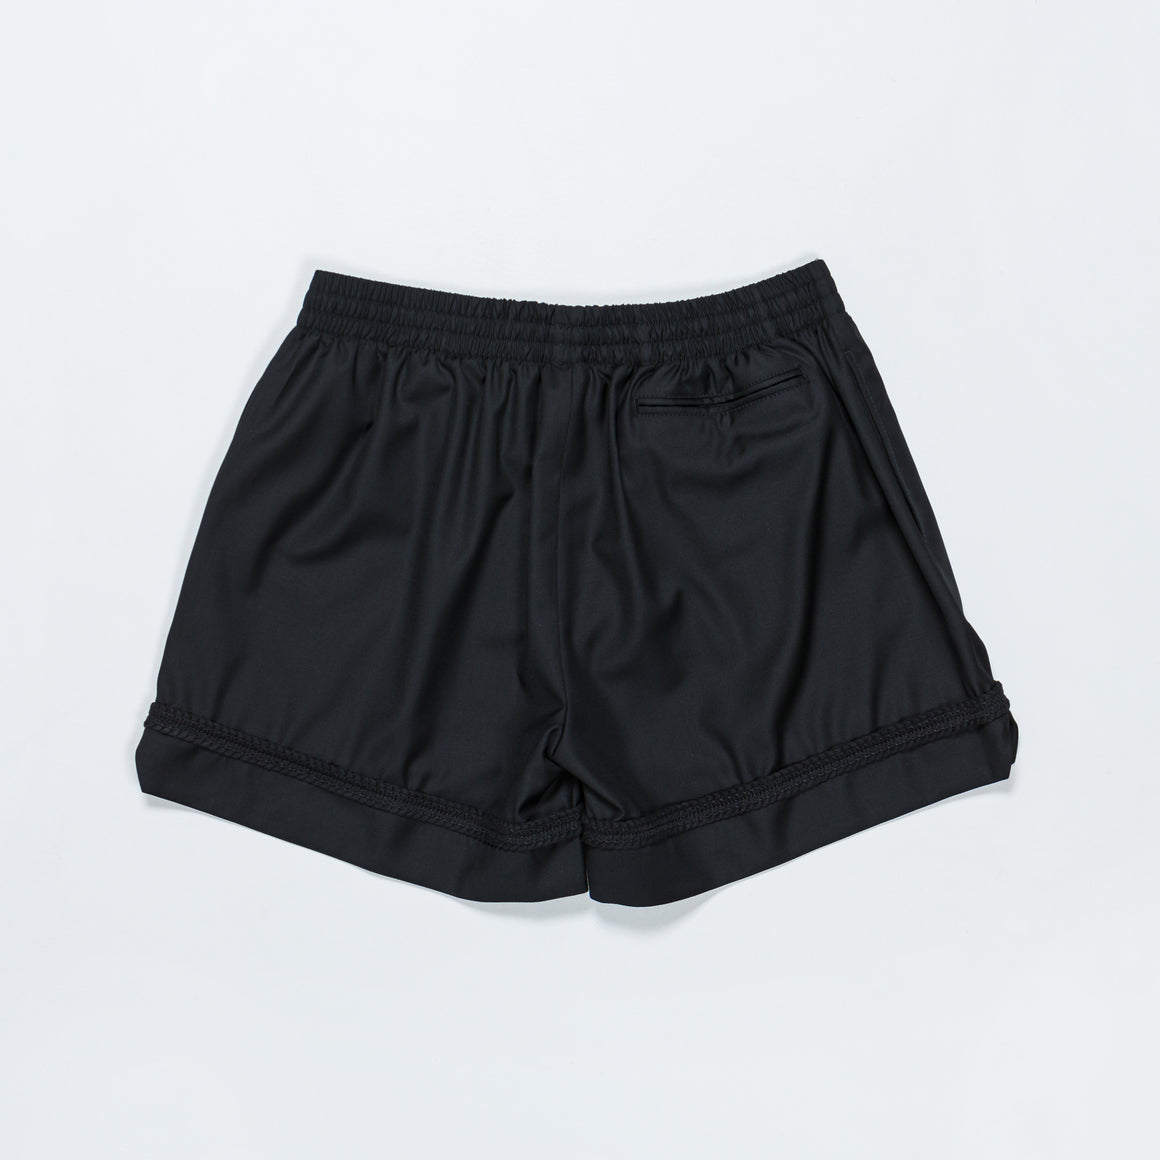 4SDesigns - Activity Short w/ Braiding - Black - Up There